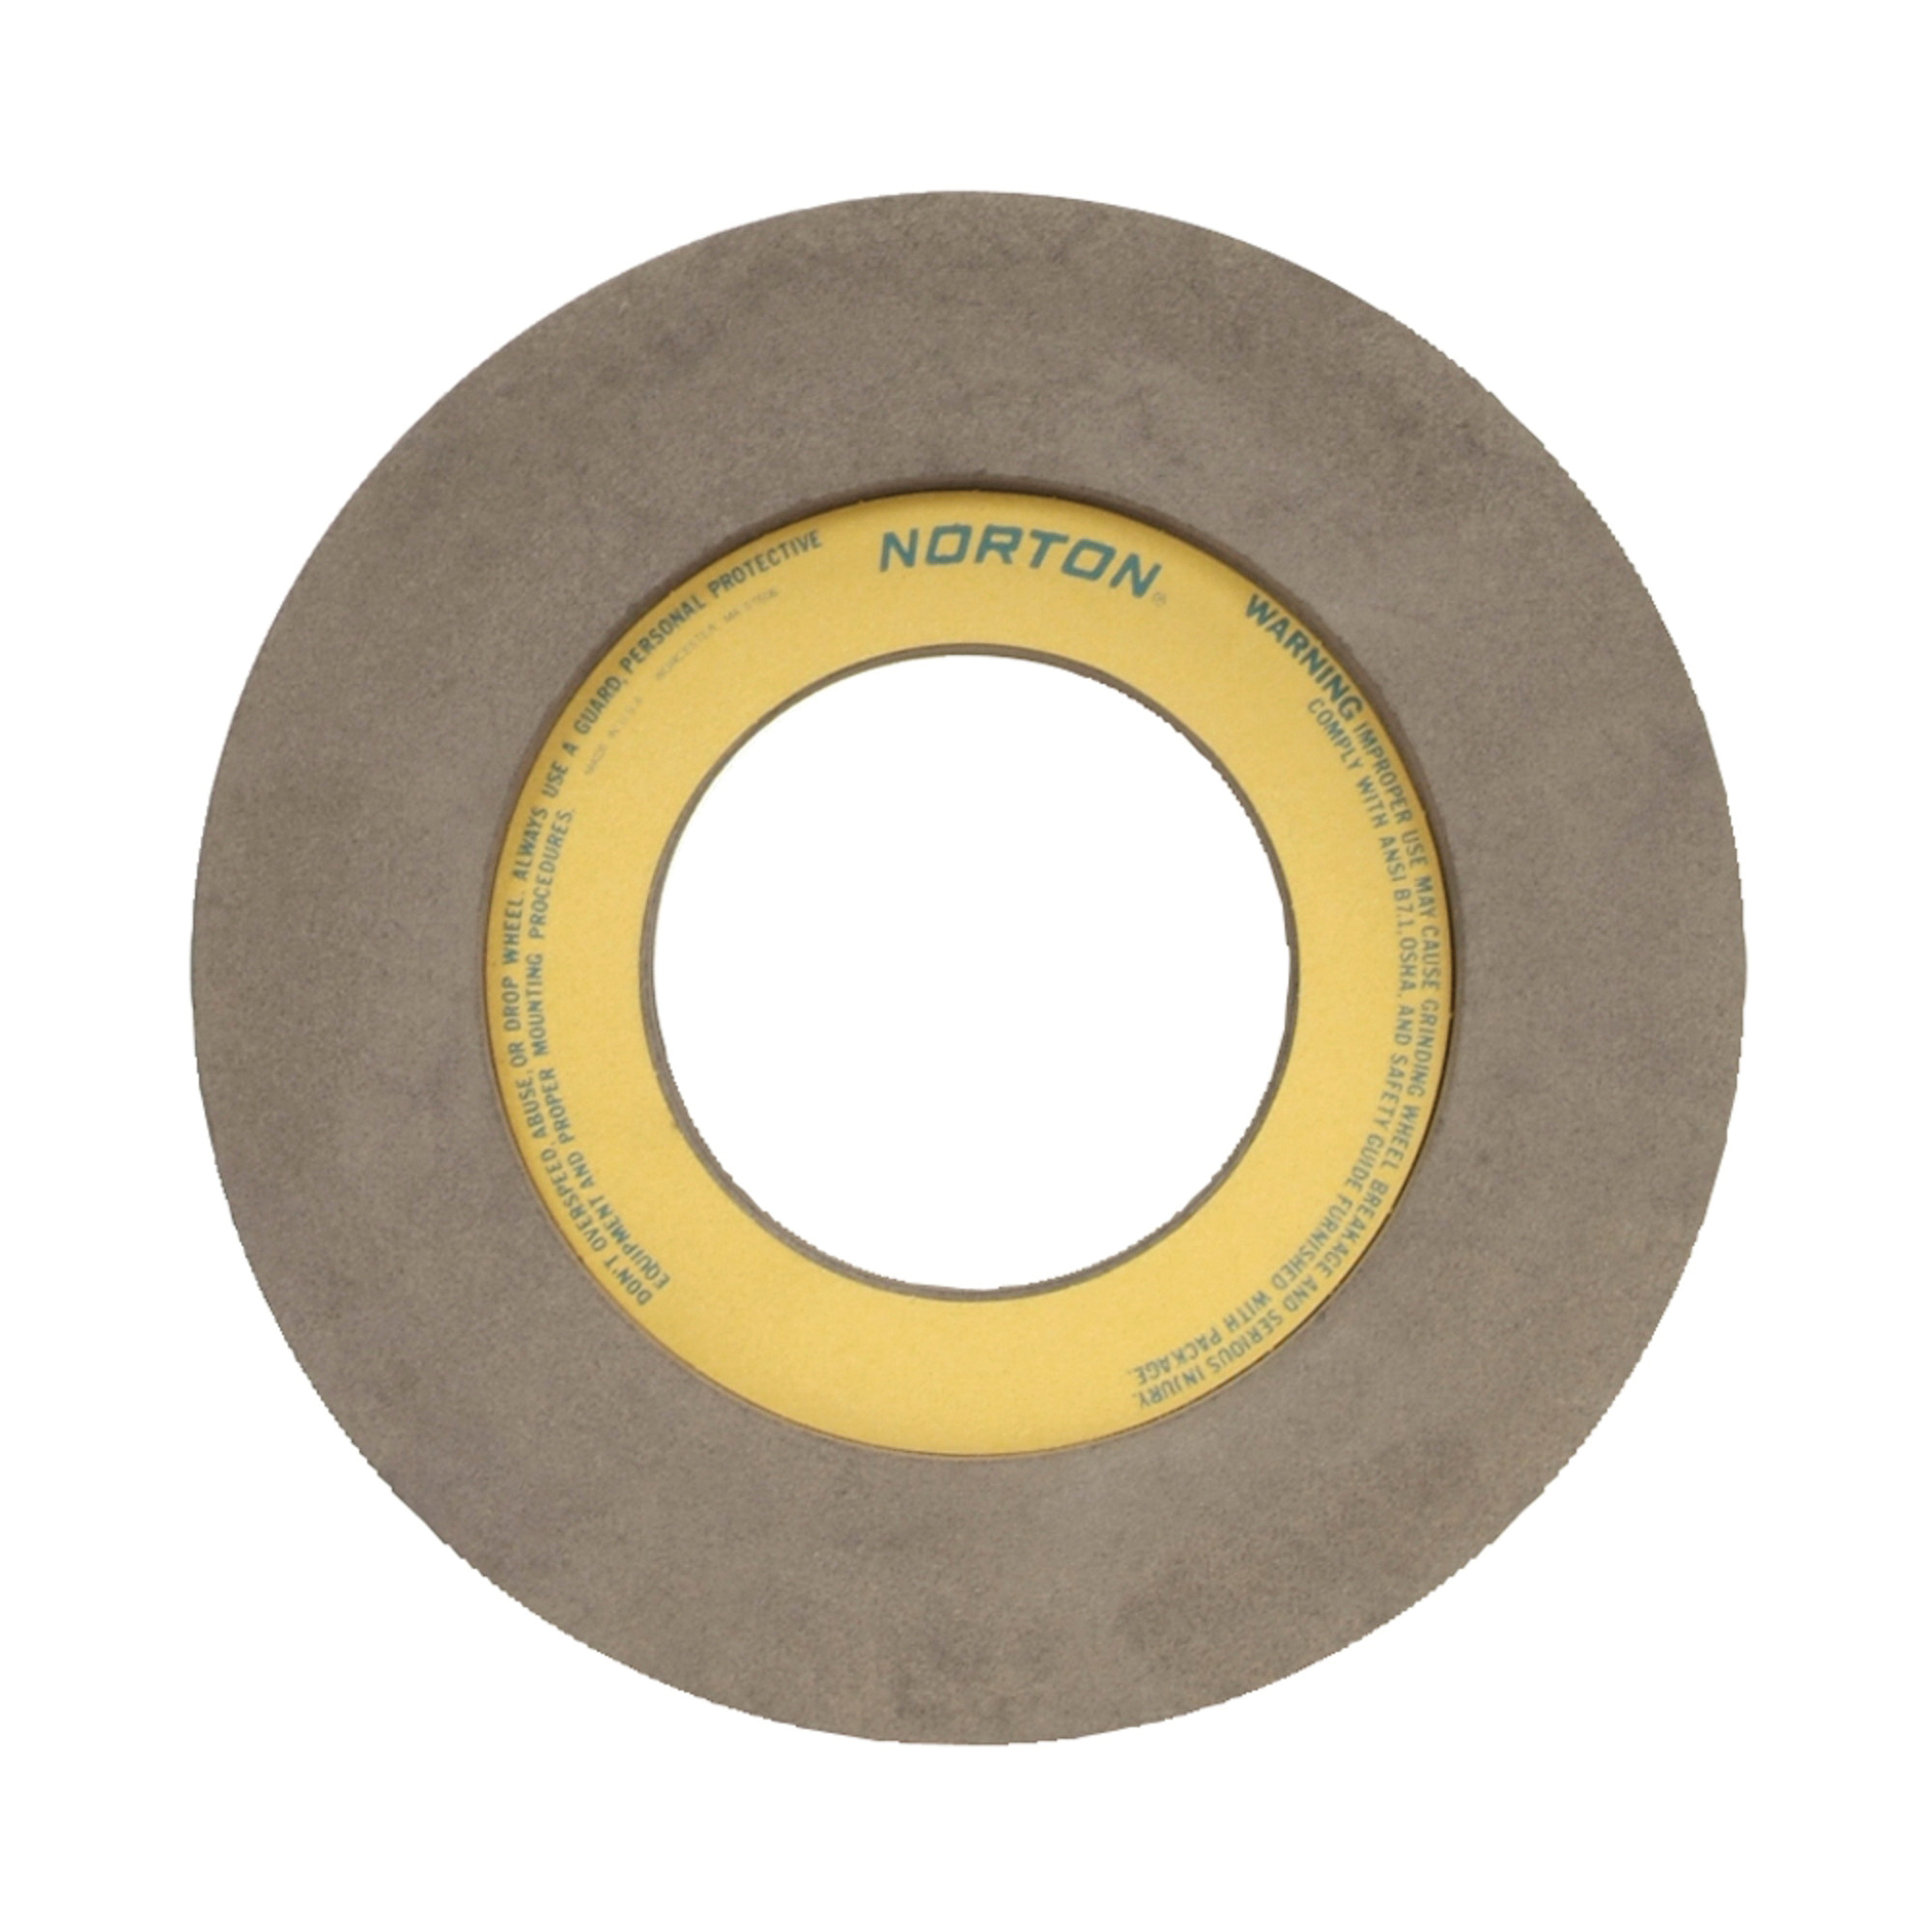 Norton® 66253222844 57A Centerless Feed Wheel, 12 in Dia x 4 in W, 5 in Hole, Type 7, 80 Grit